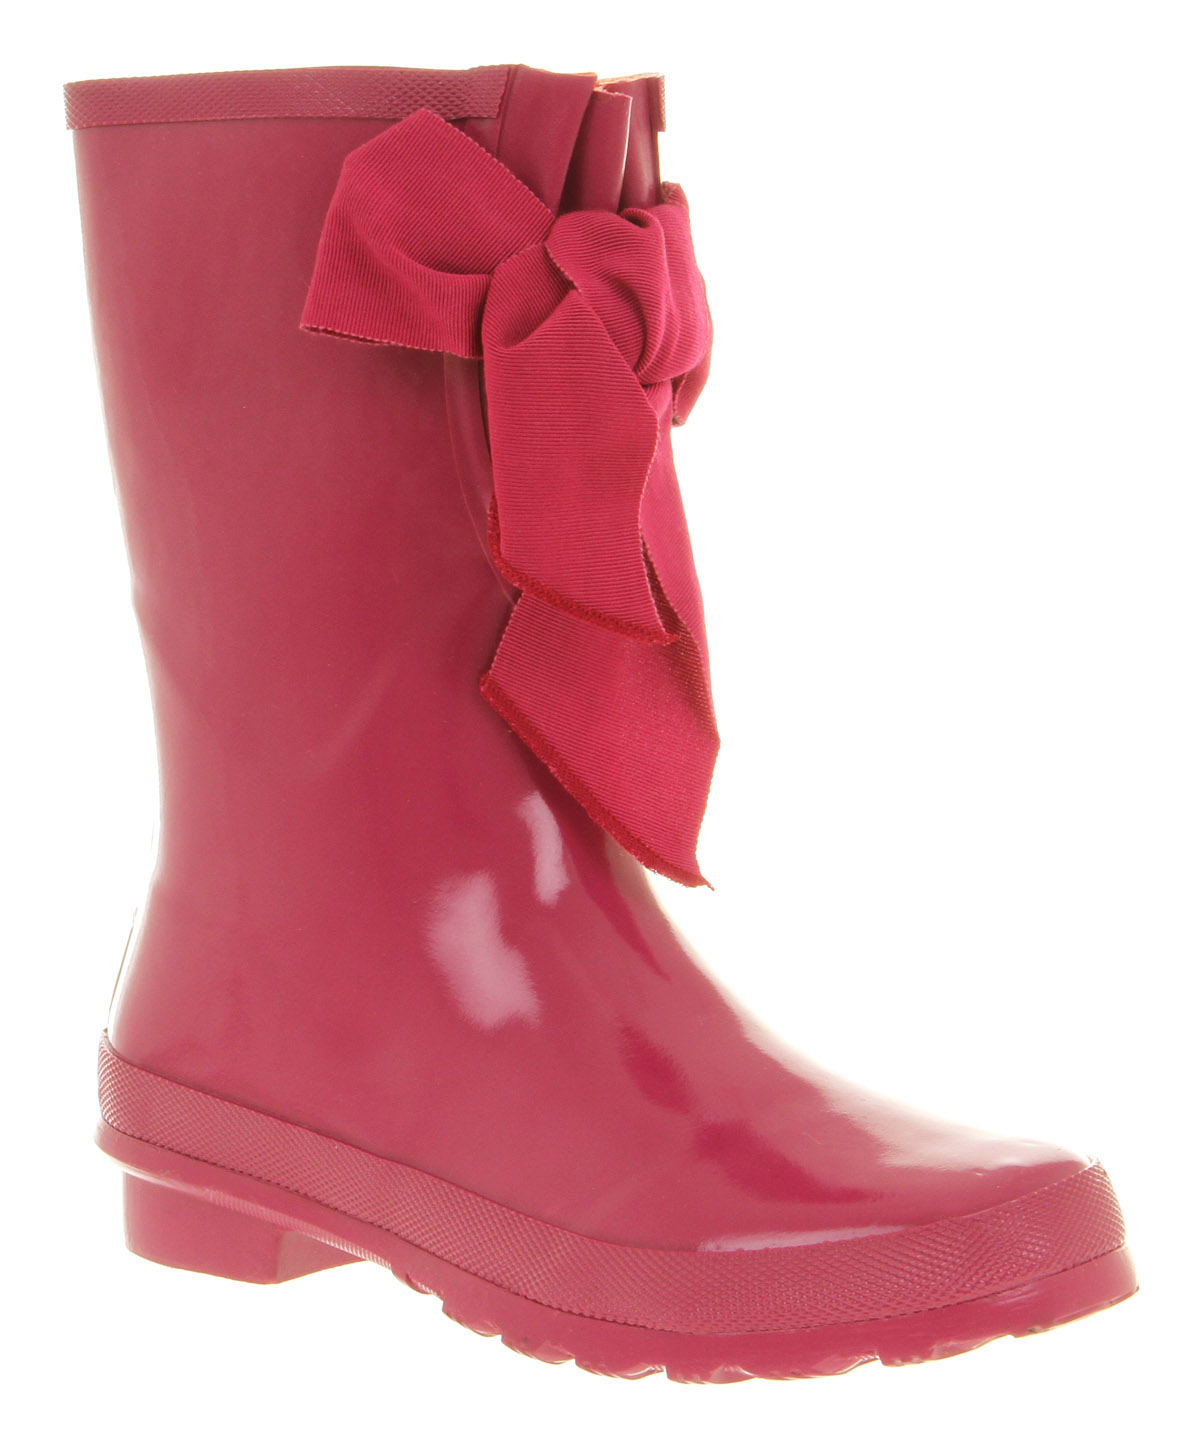 Shop for Women's Pink Rubber inch Mid-calf Rain Boots. Get free shipping at jomp16.tk - Your Online Shoes Outlet Store! Get 5% in rewards with Club O! -